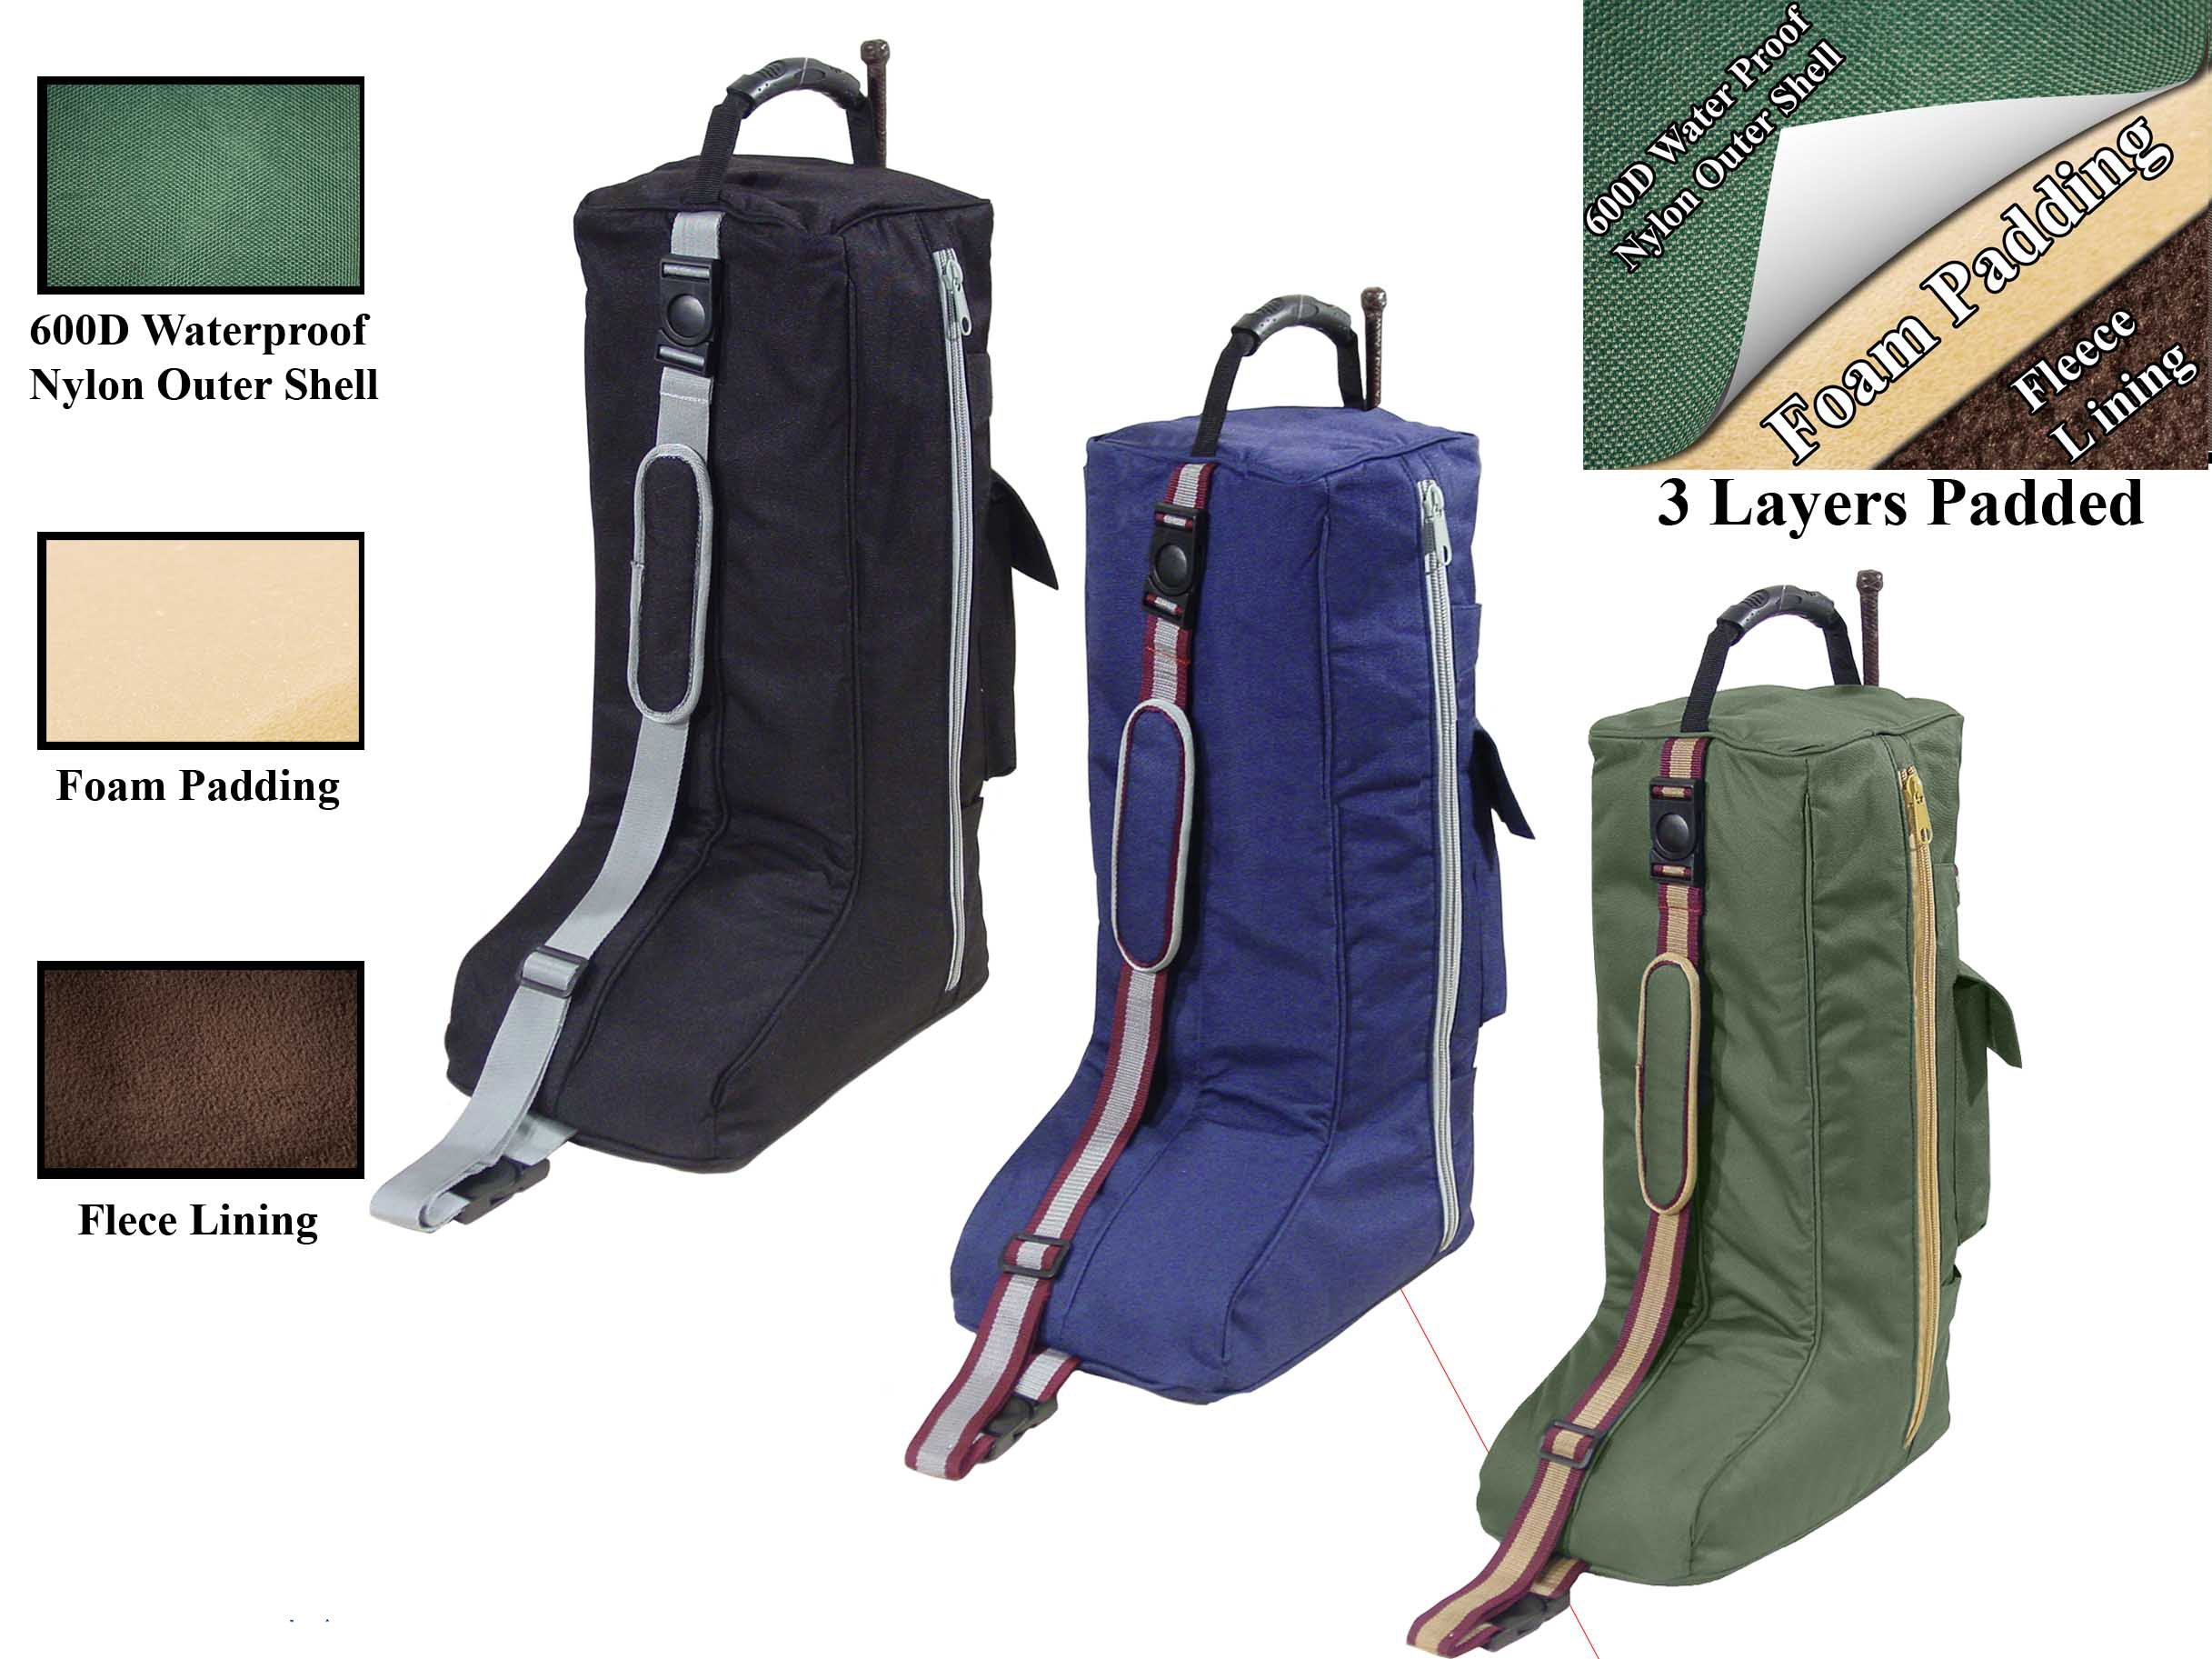 Derby English Horse Saddle, Bridle, Boot, and Garment Carry Bag Set with One year warranty by Derby Originals (Image #4)